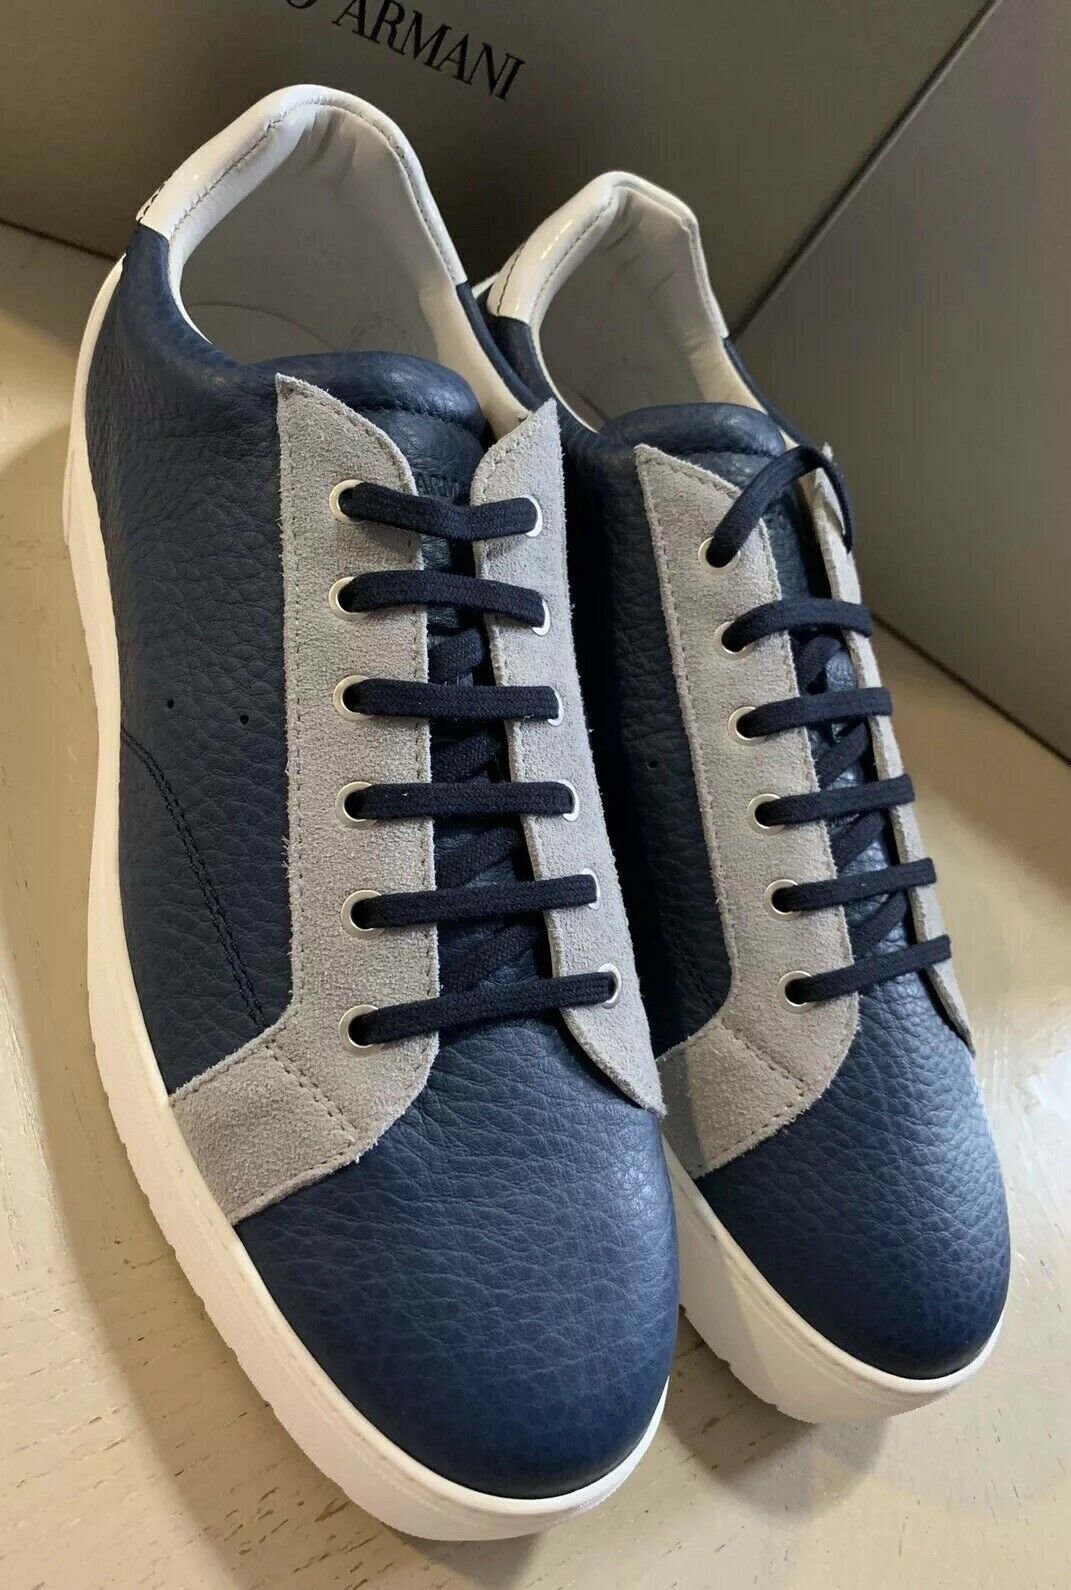 New  825 Giorgio Armani Men Leather Sneakers shoes Navy bluee 9.5 US 8.5UK X2X063